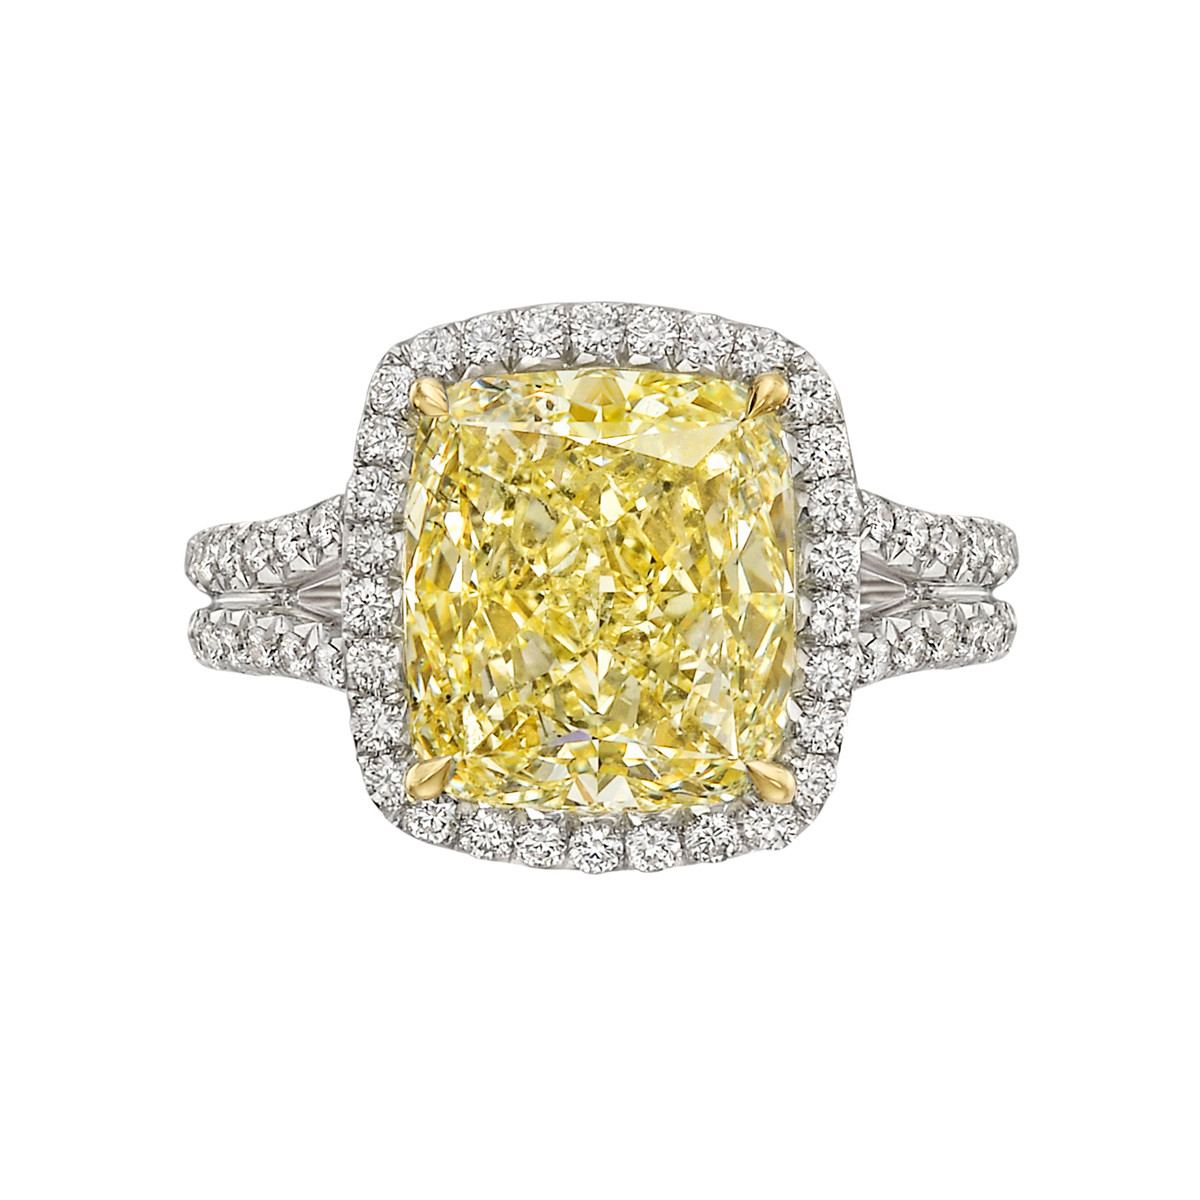 4.57 Carat Fancy Yellow Diamond Ring